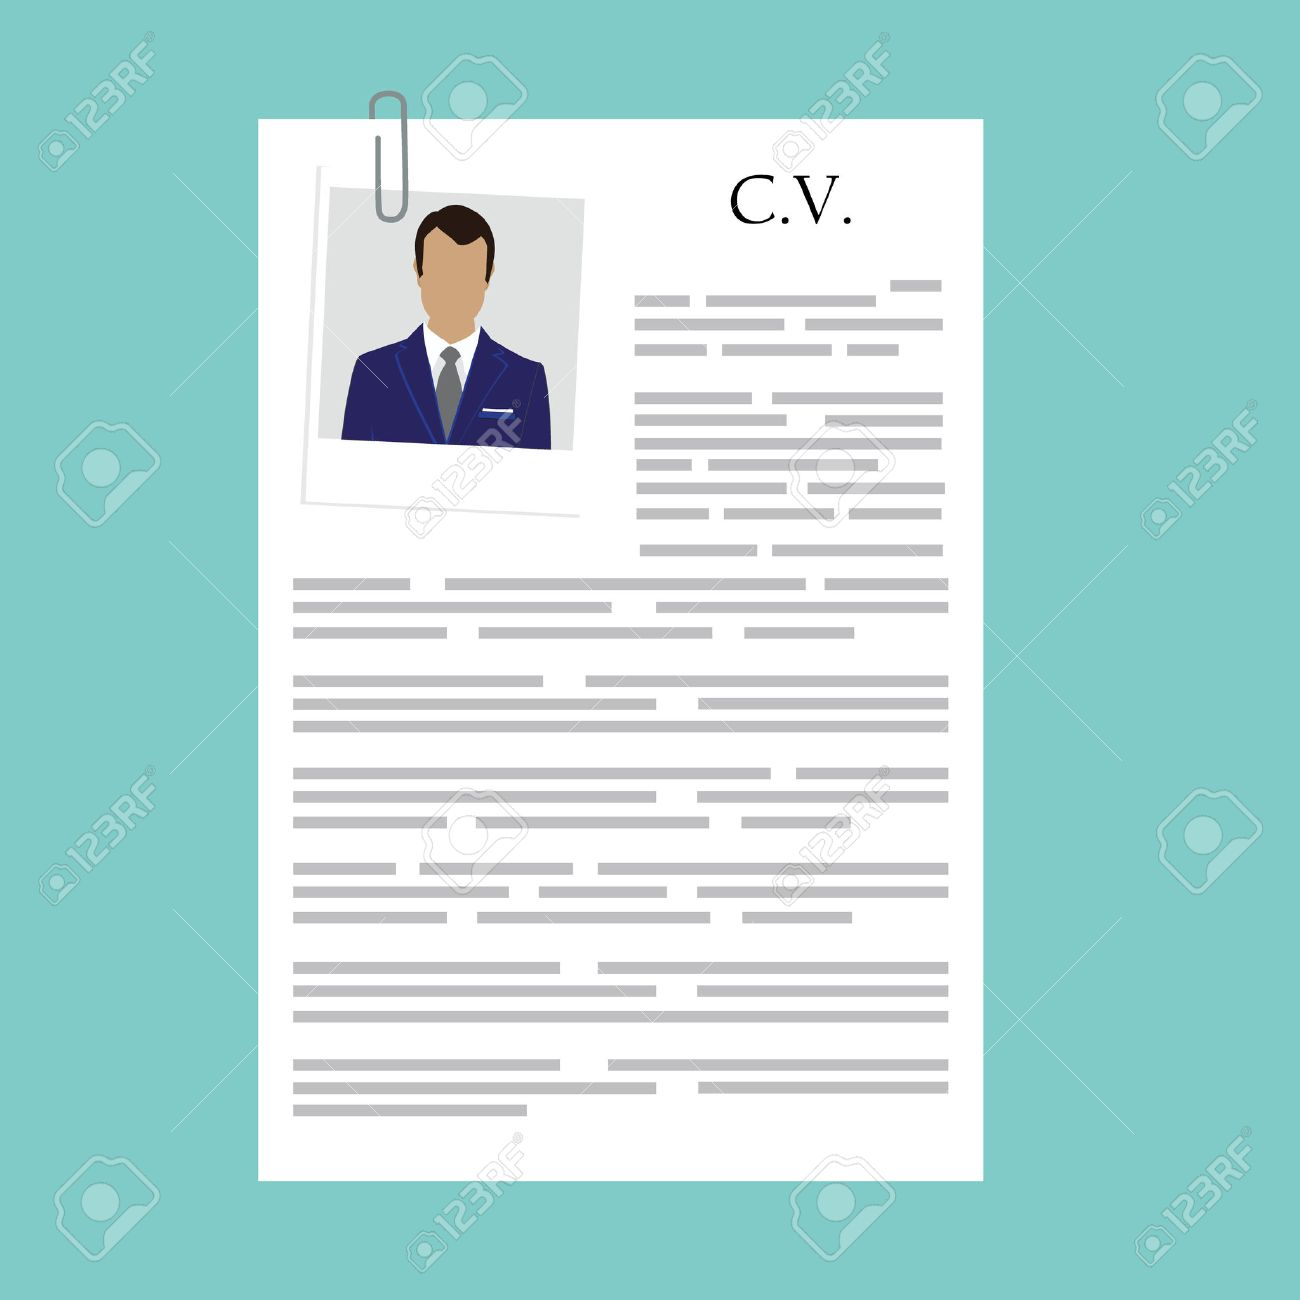 vector vector illustration curriculum vitae with man polaroid photo cv on blue background job interview concept with cv resume